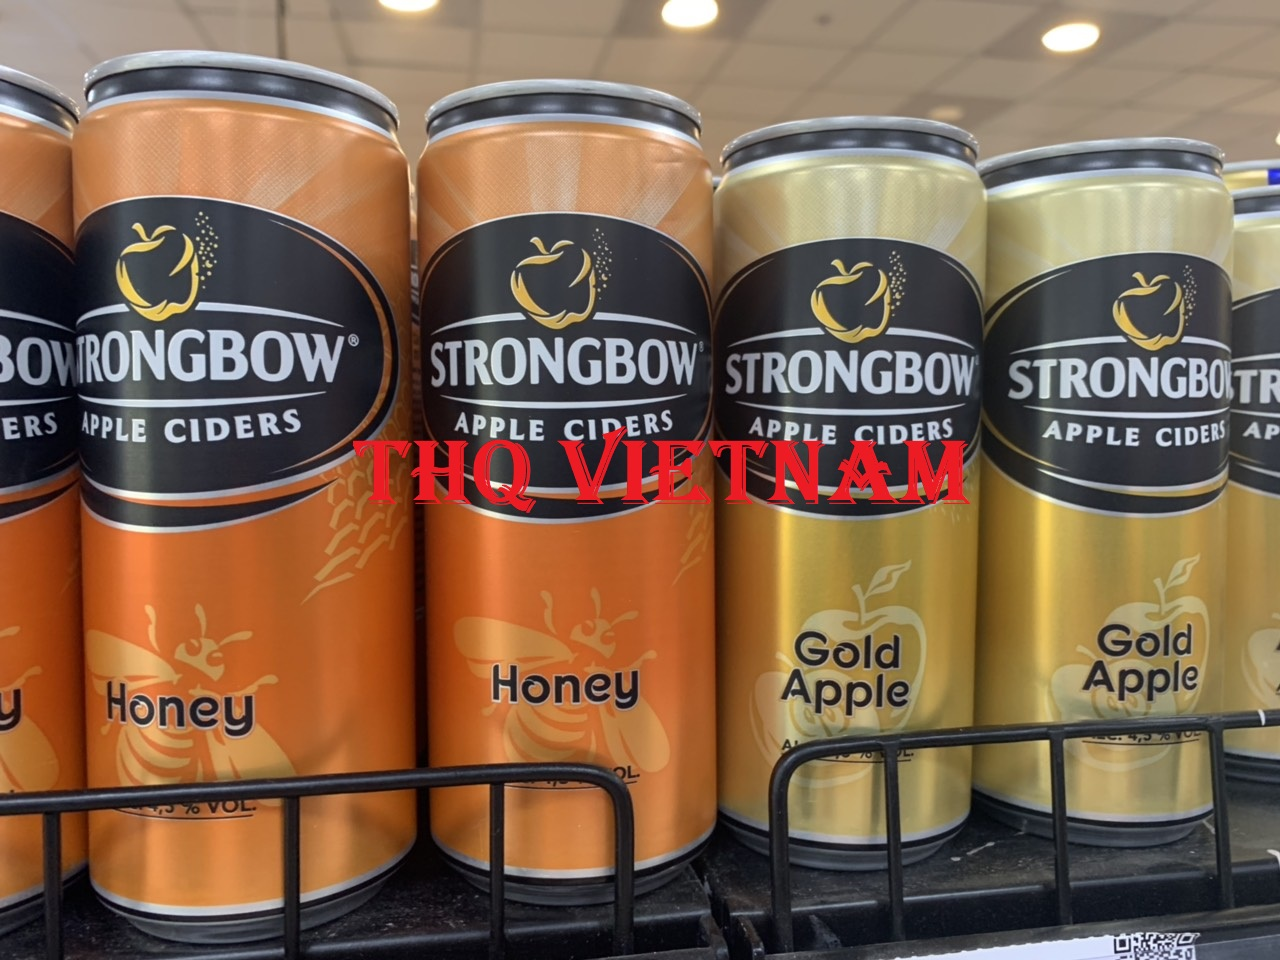 STRONGBOW APPLE CIDERS 330ml